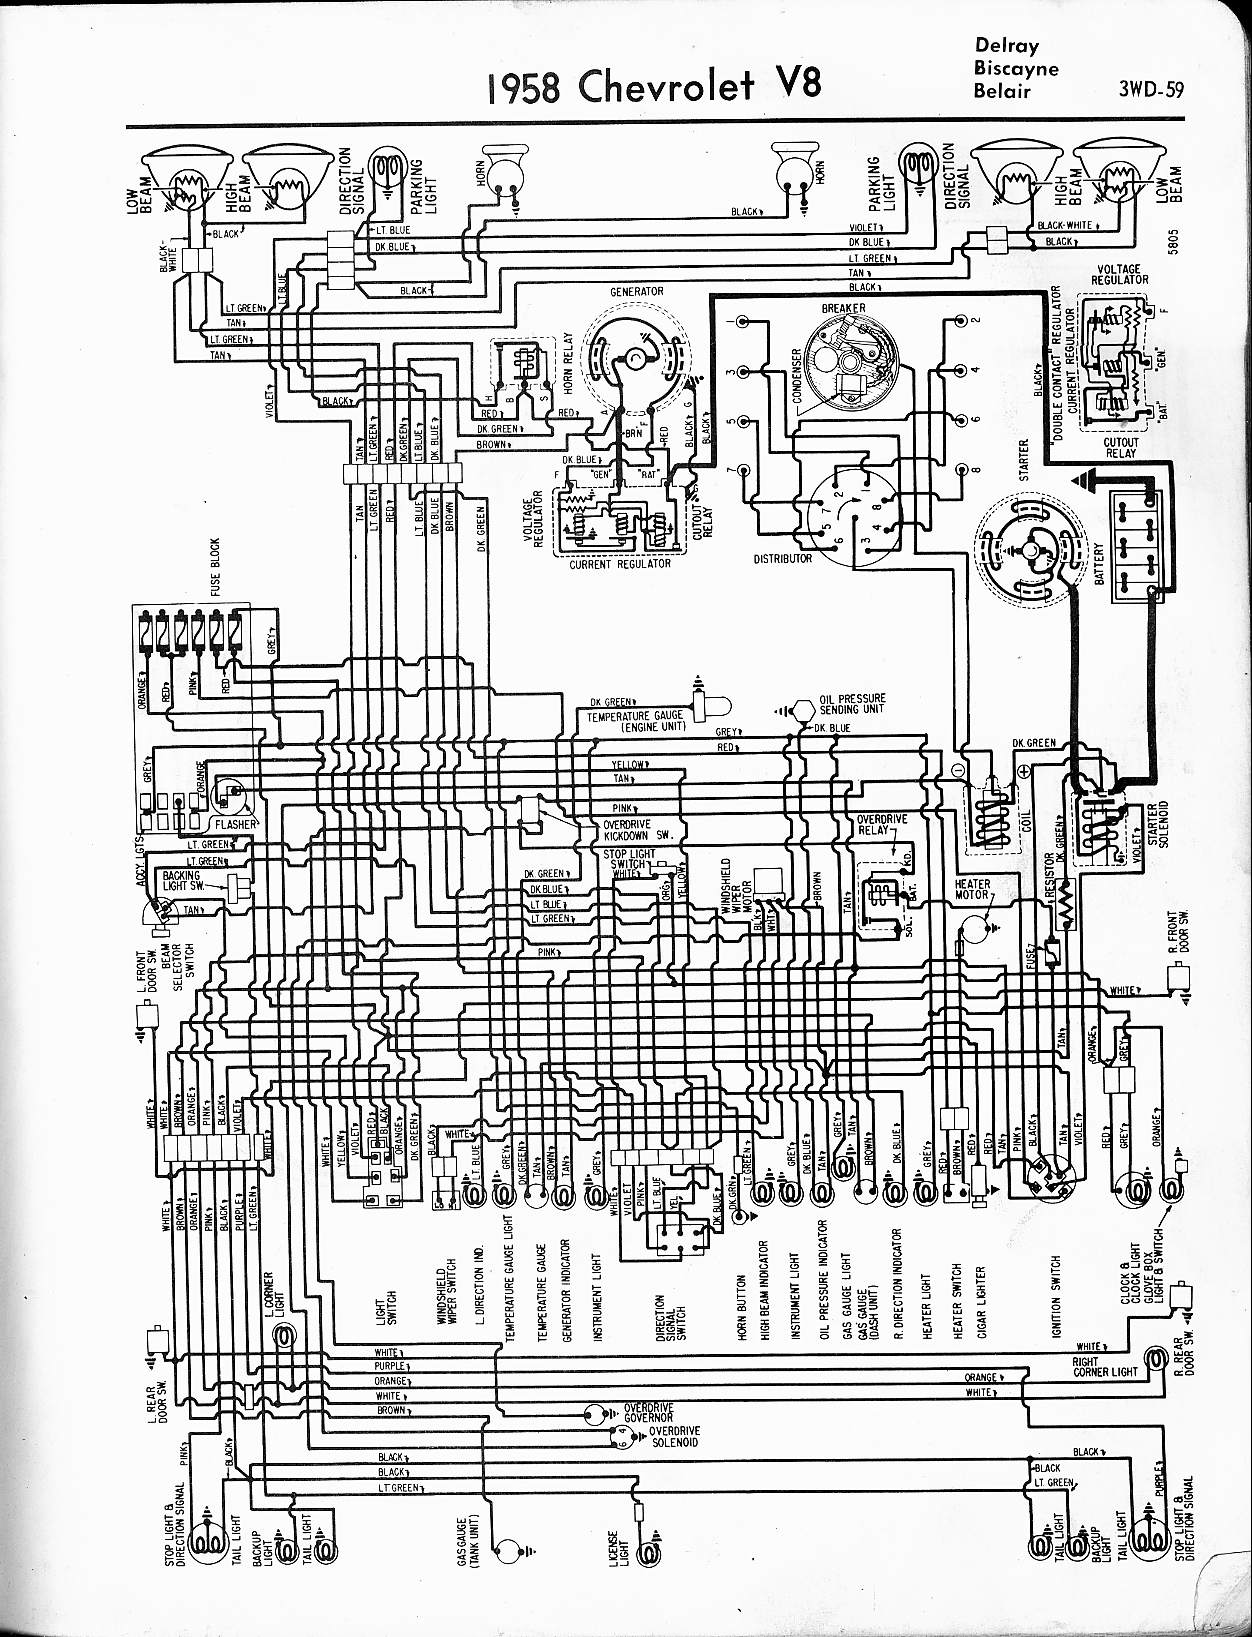 MWireChev58_3WD 059 57 65 chevy wiring diagrams chevy wiring diagrams at n-0.co